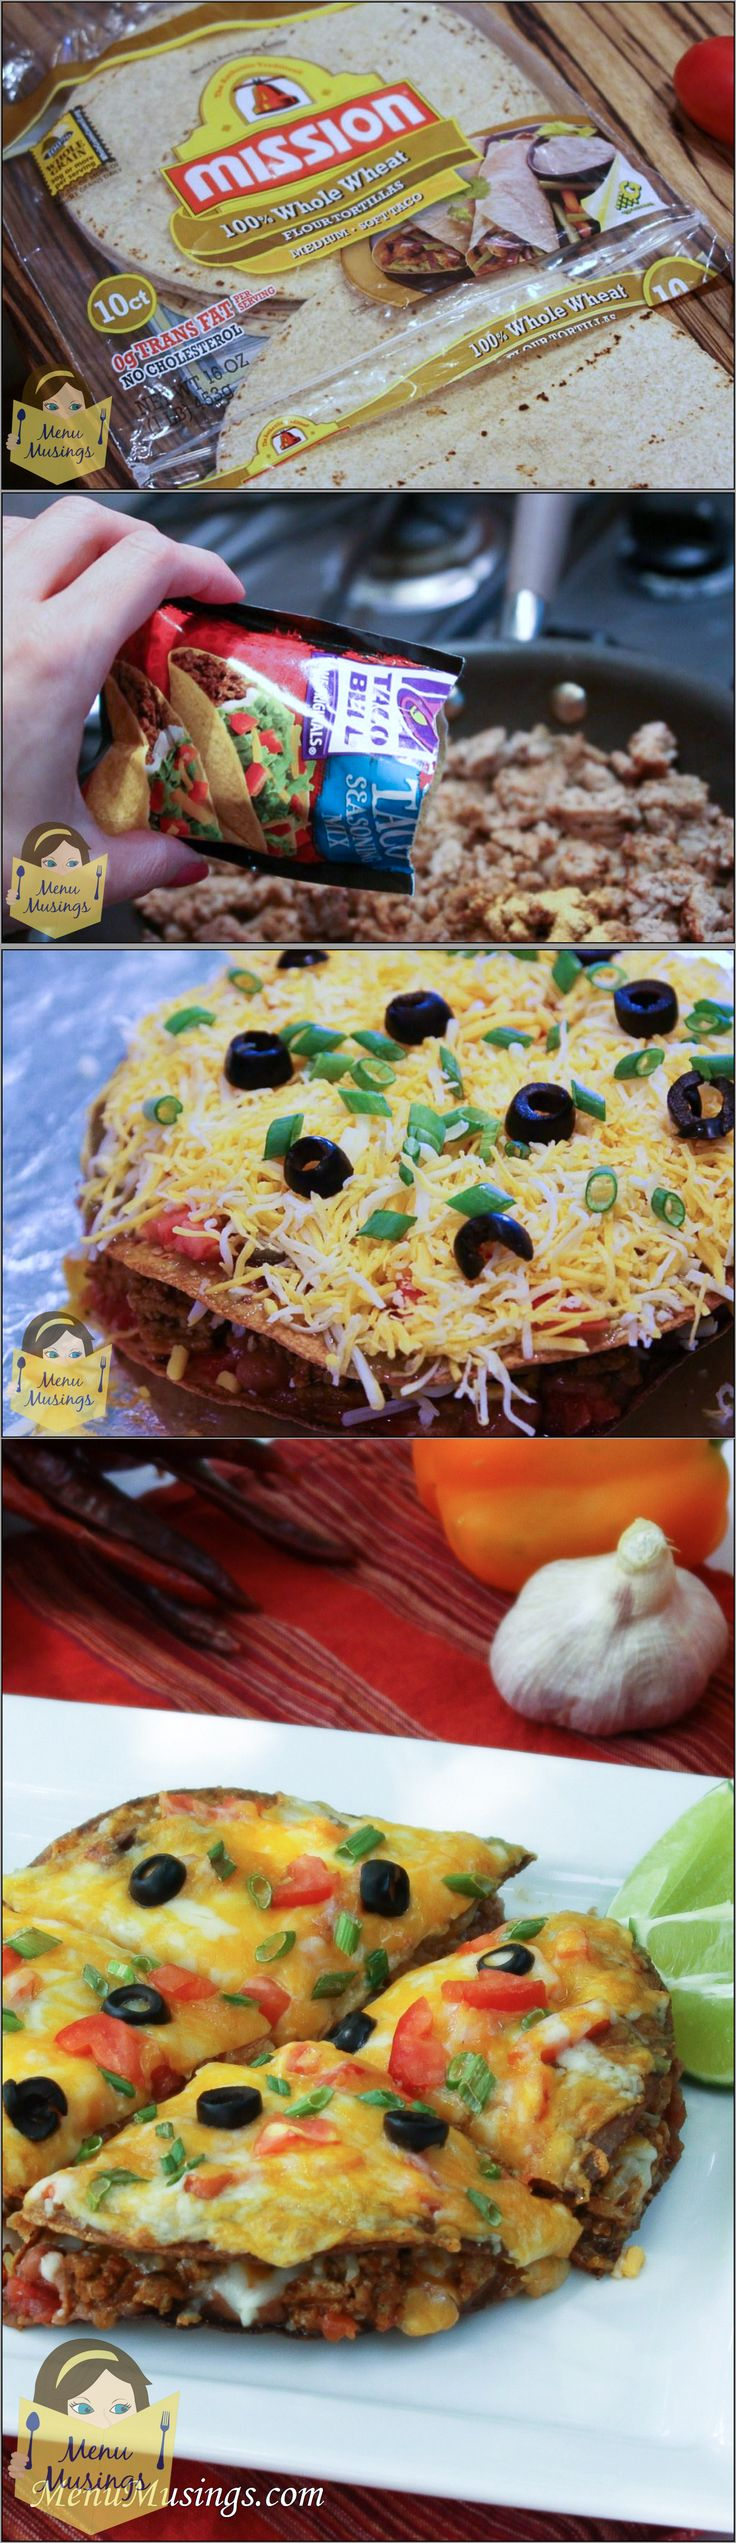 Skinny Mexican Pizza - a favorite of my teens. No one will know it's turkey!! Over 65K views! Step-by-step photos! <3